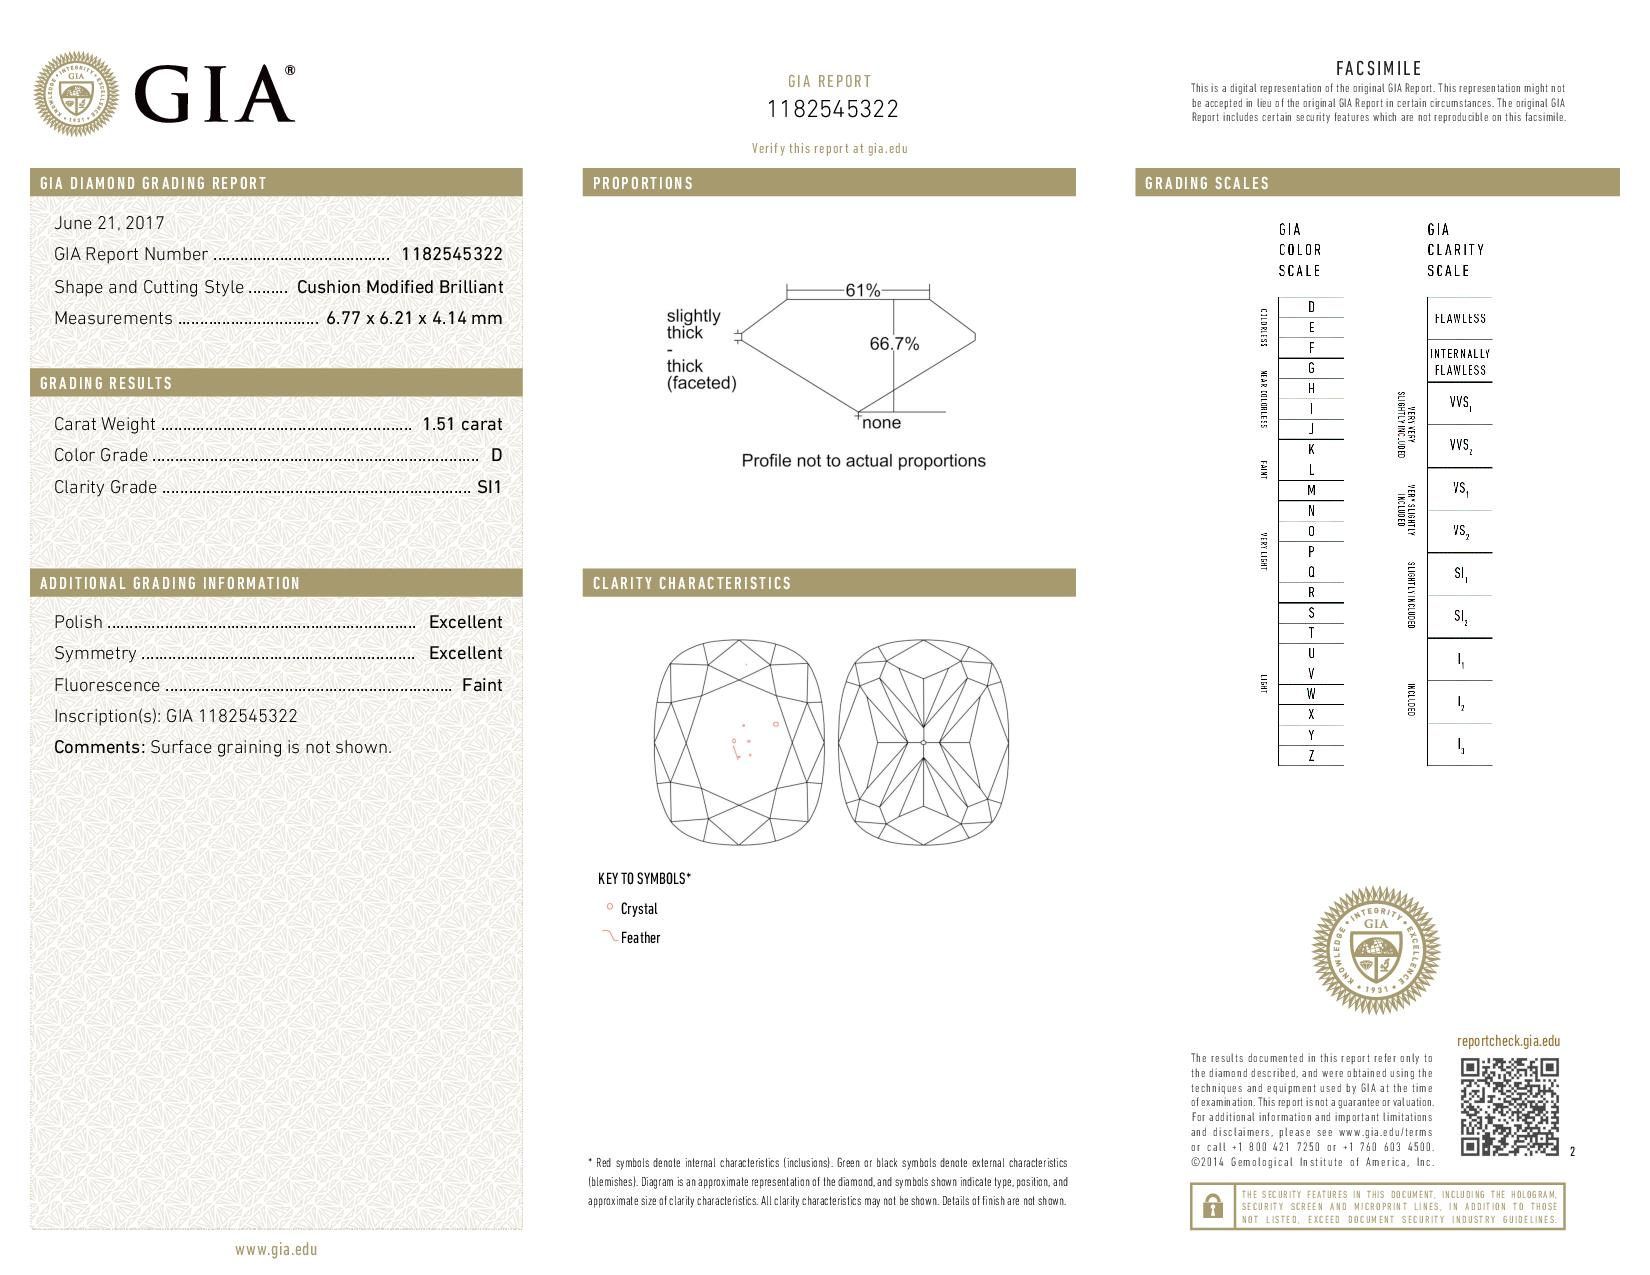 This is a 1.51 carat cushion shape, D color, SI1 clarity natural diamond accompanied by a GIA grading report.